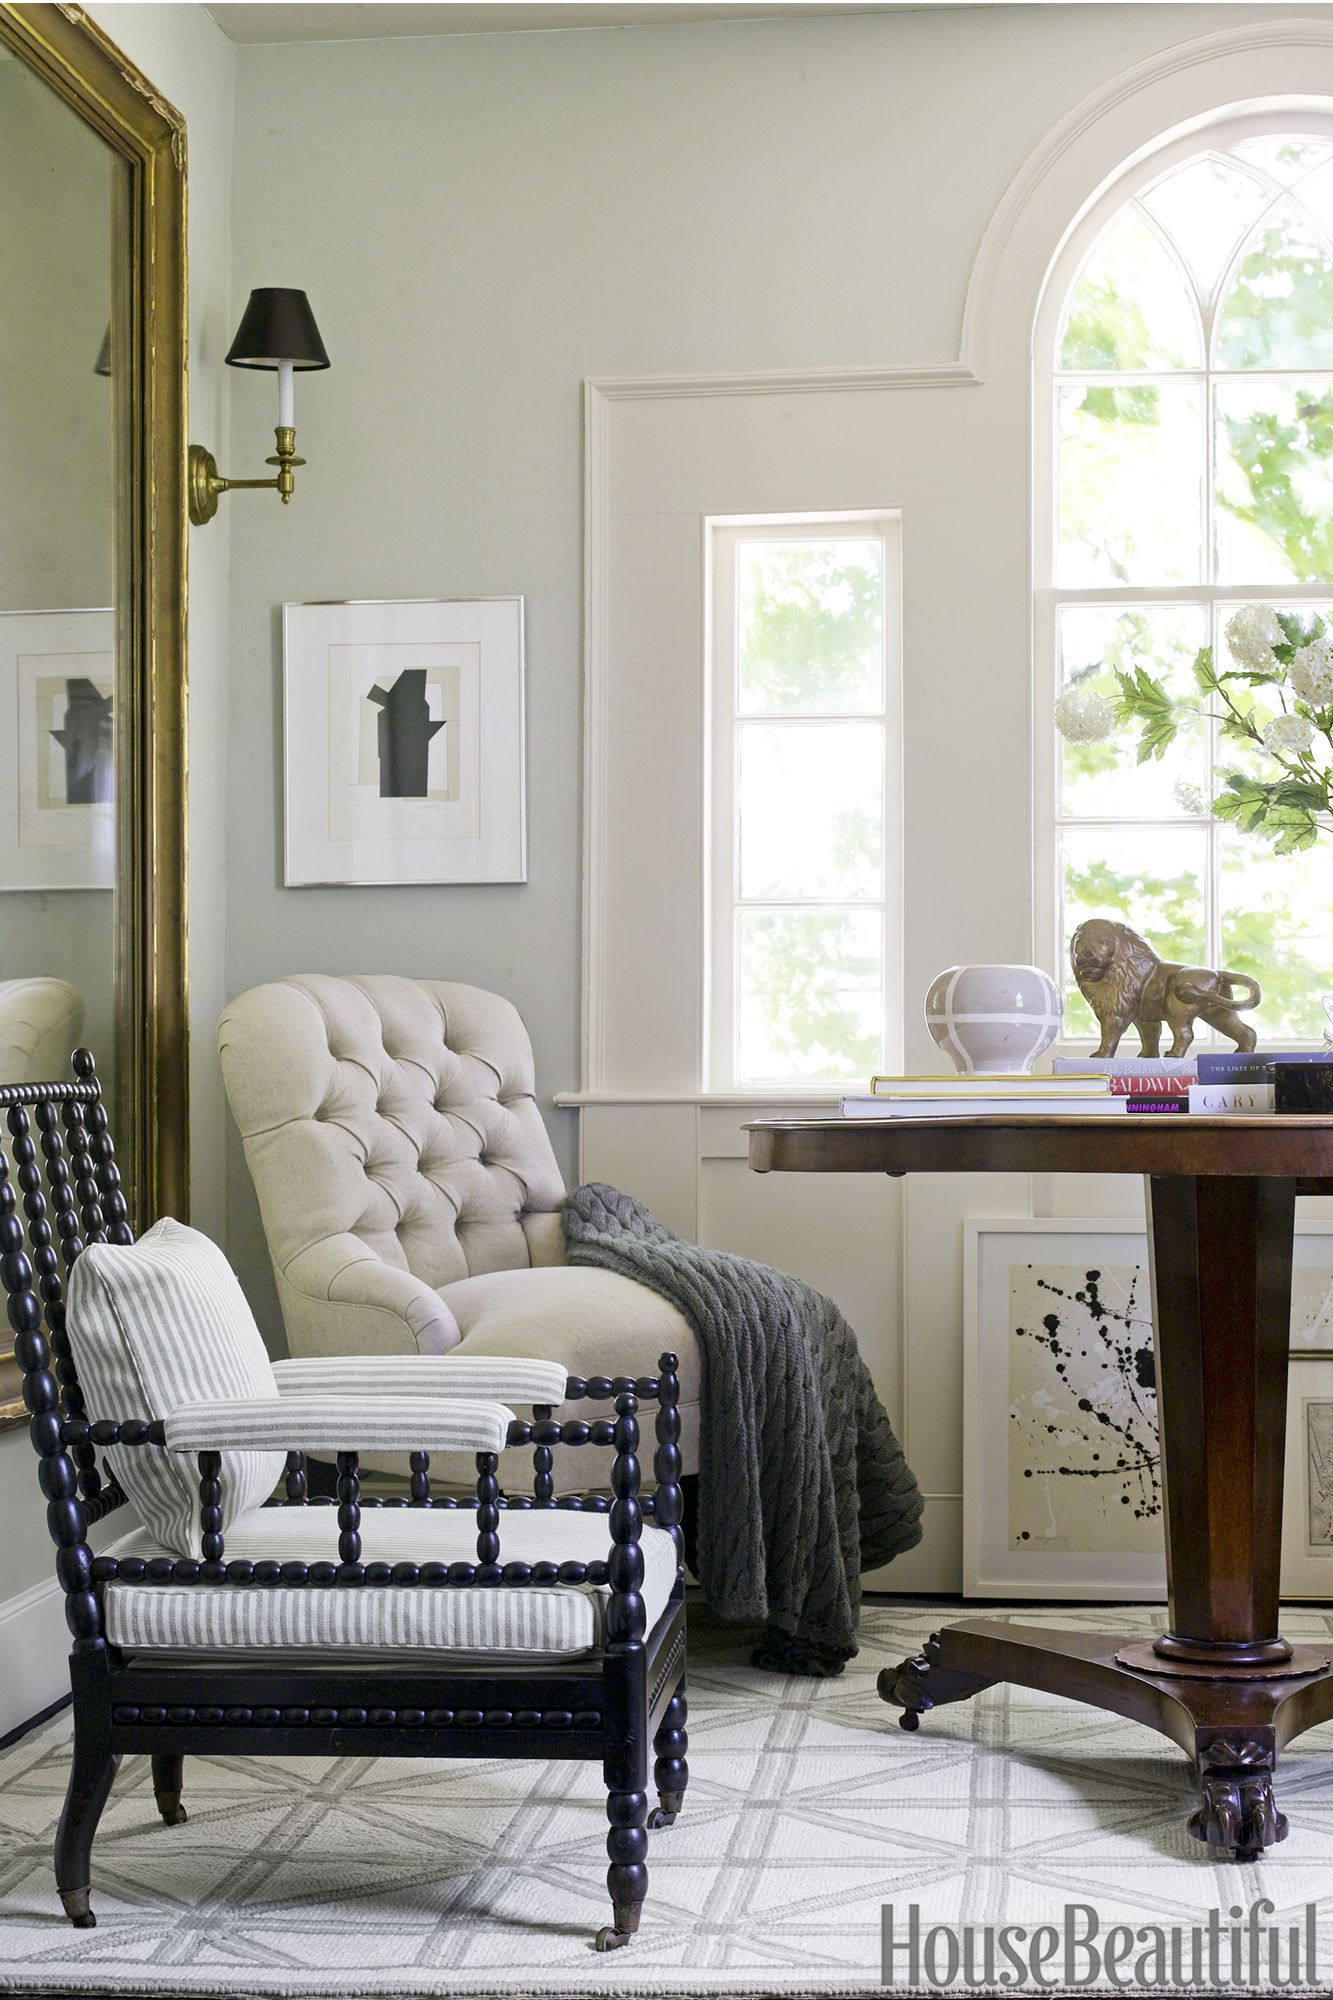 10 sage green paint colors that bring peace and calm on popular designer paint colors id=27743